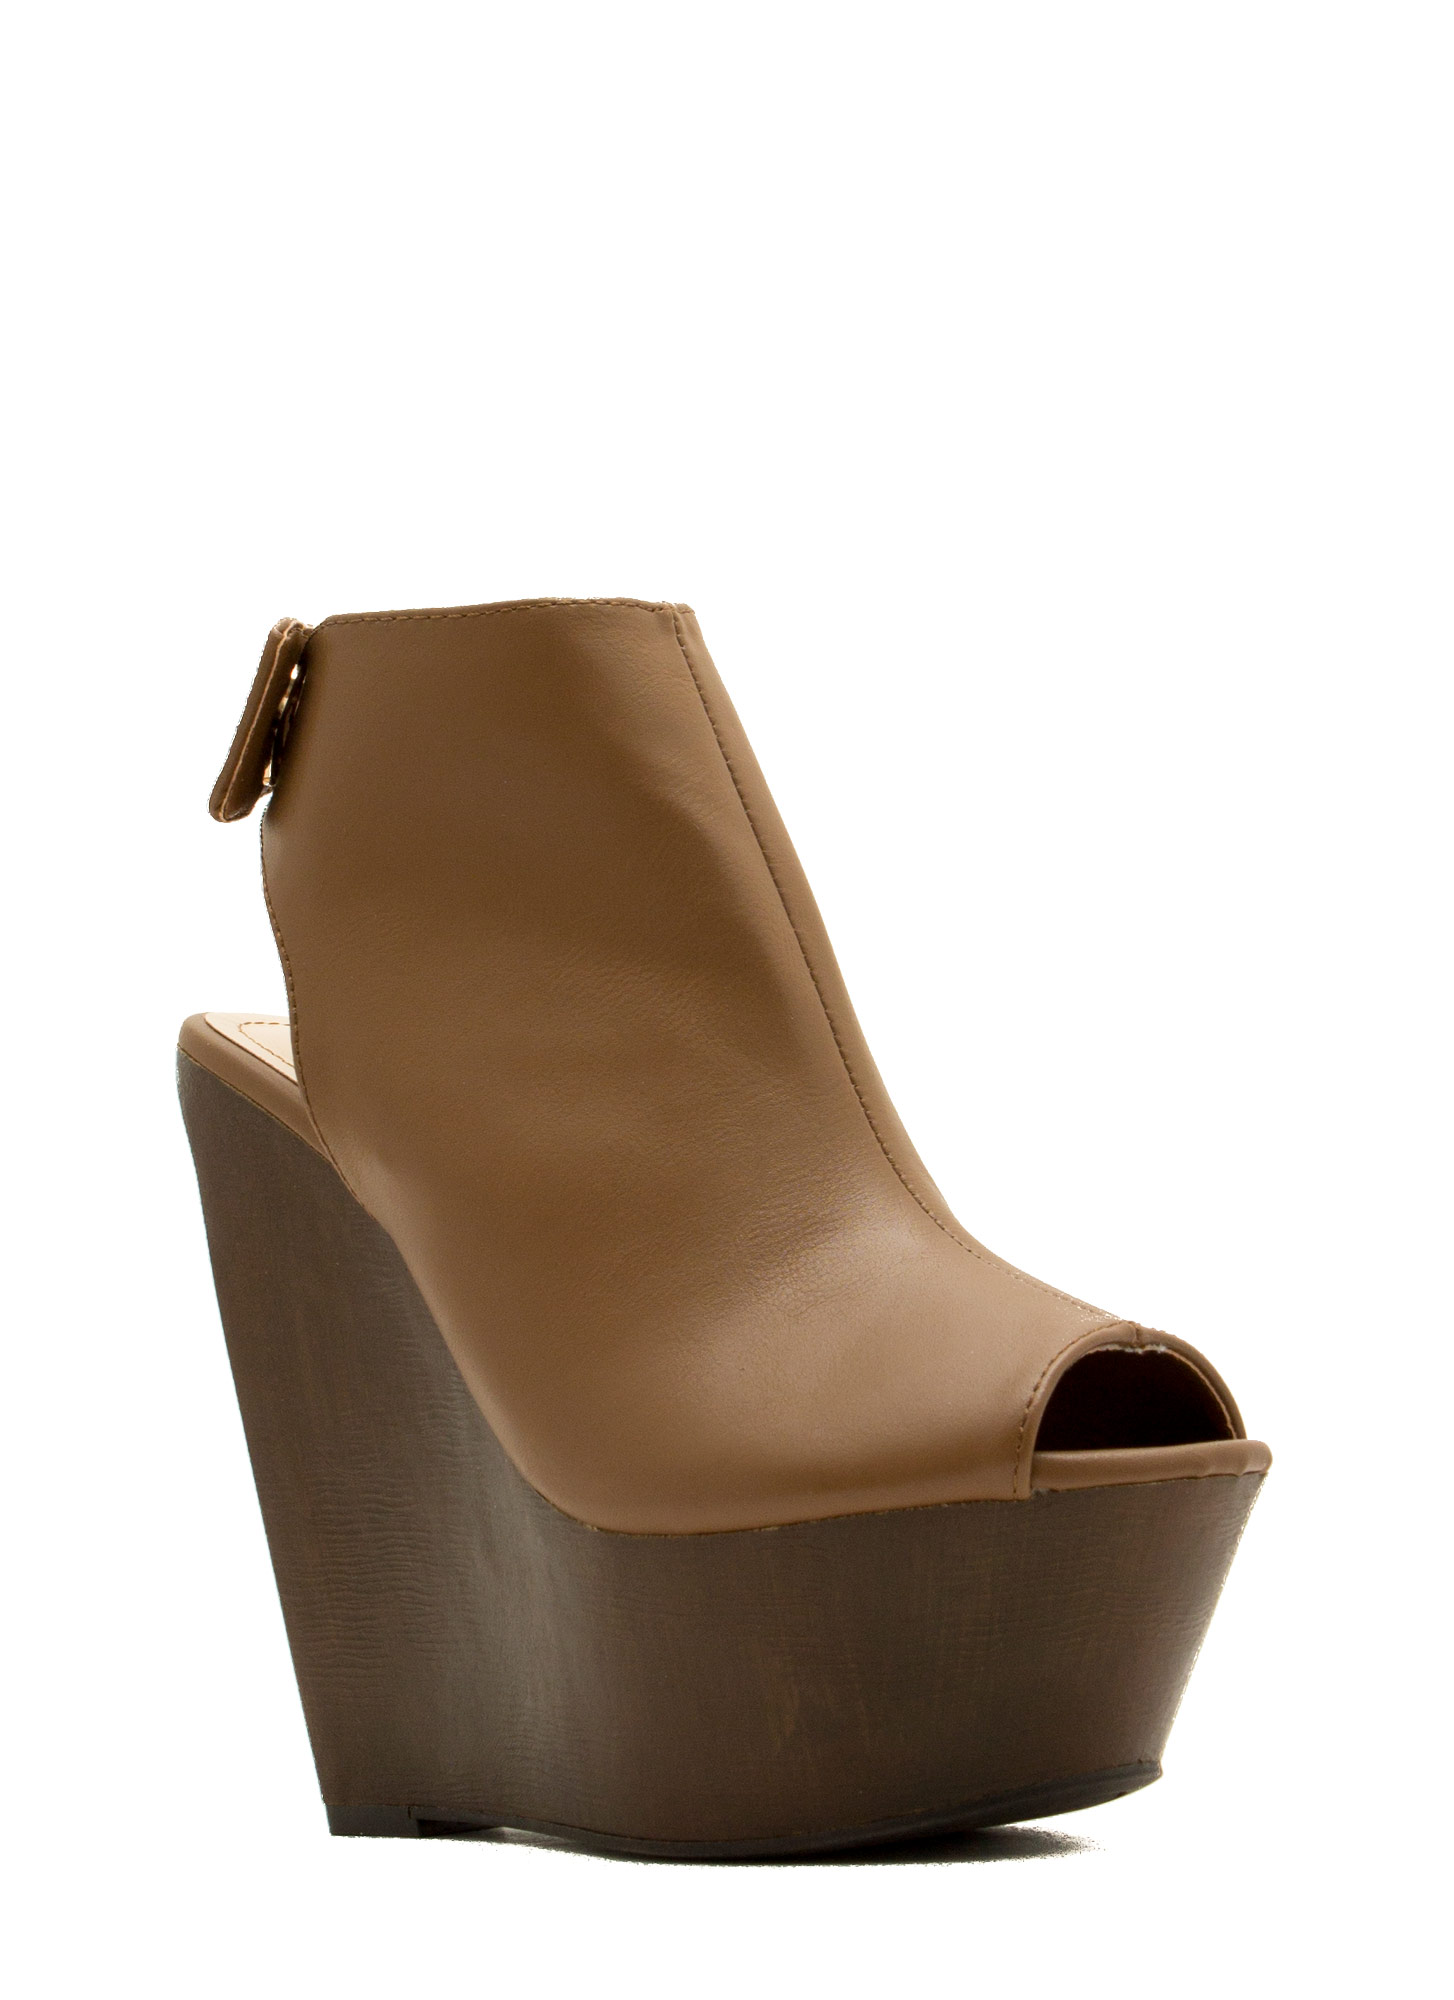 Faux Leather Mule Platform Wedges TAN